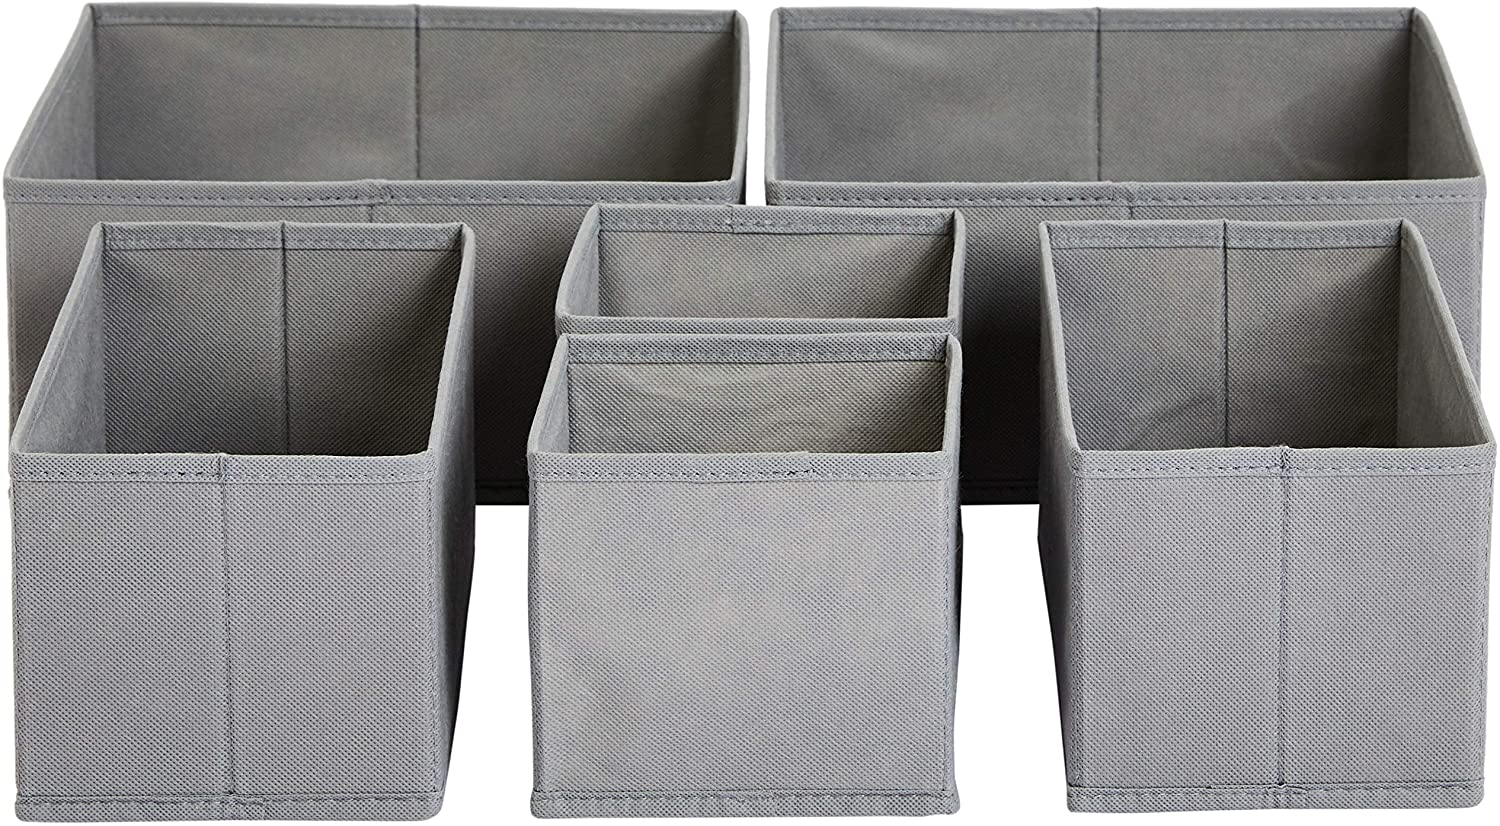 AmazonBasics Cloth Drawer Storage Organizer Boxes, Set of 6